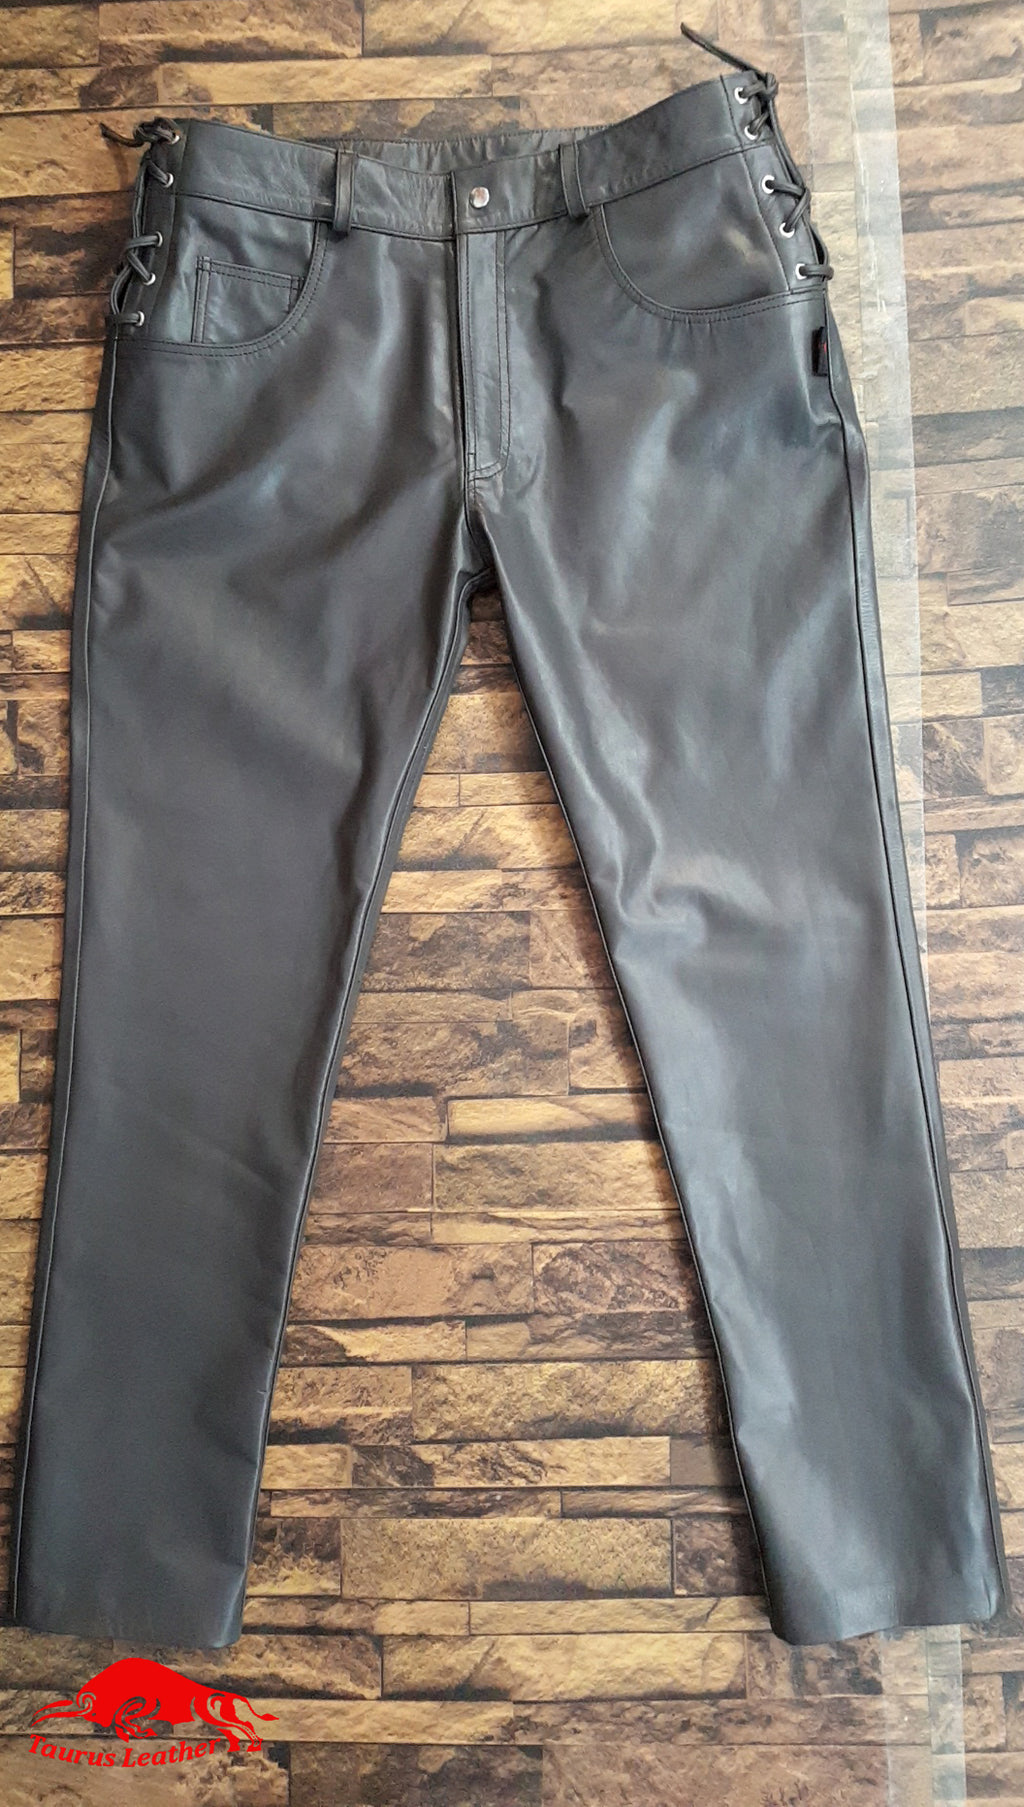 TAURUS LEATHER Grey 501 Style Cow Leather Pant